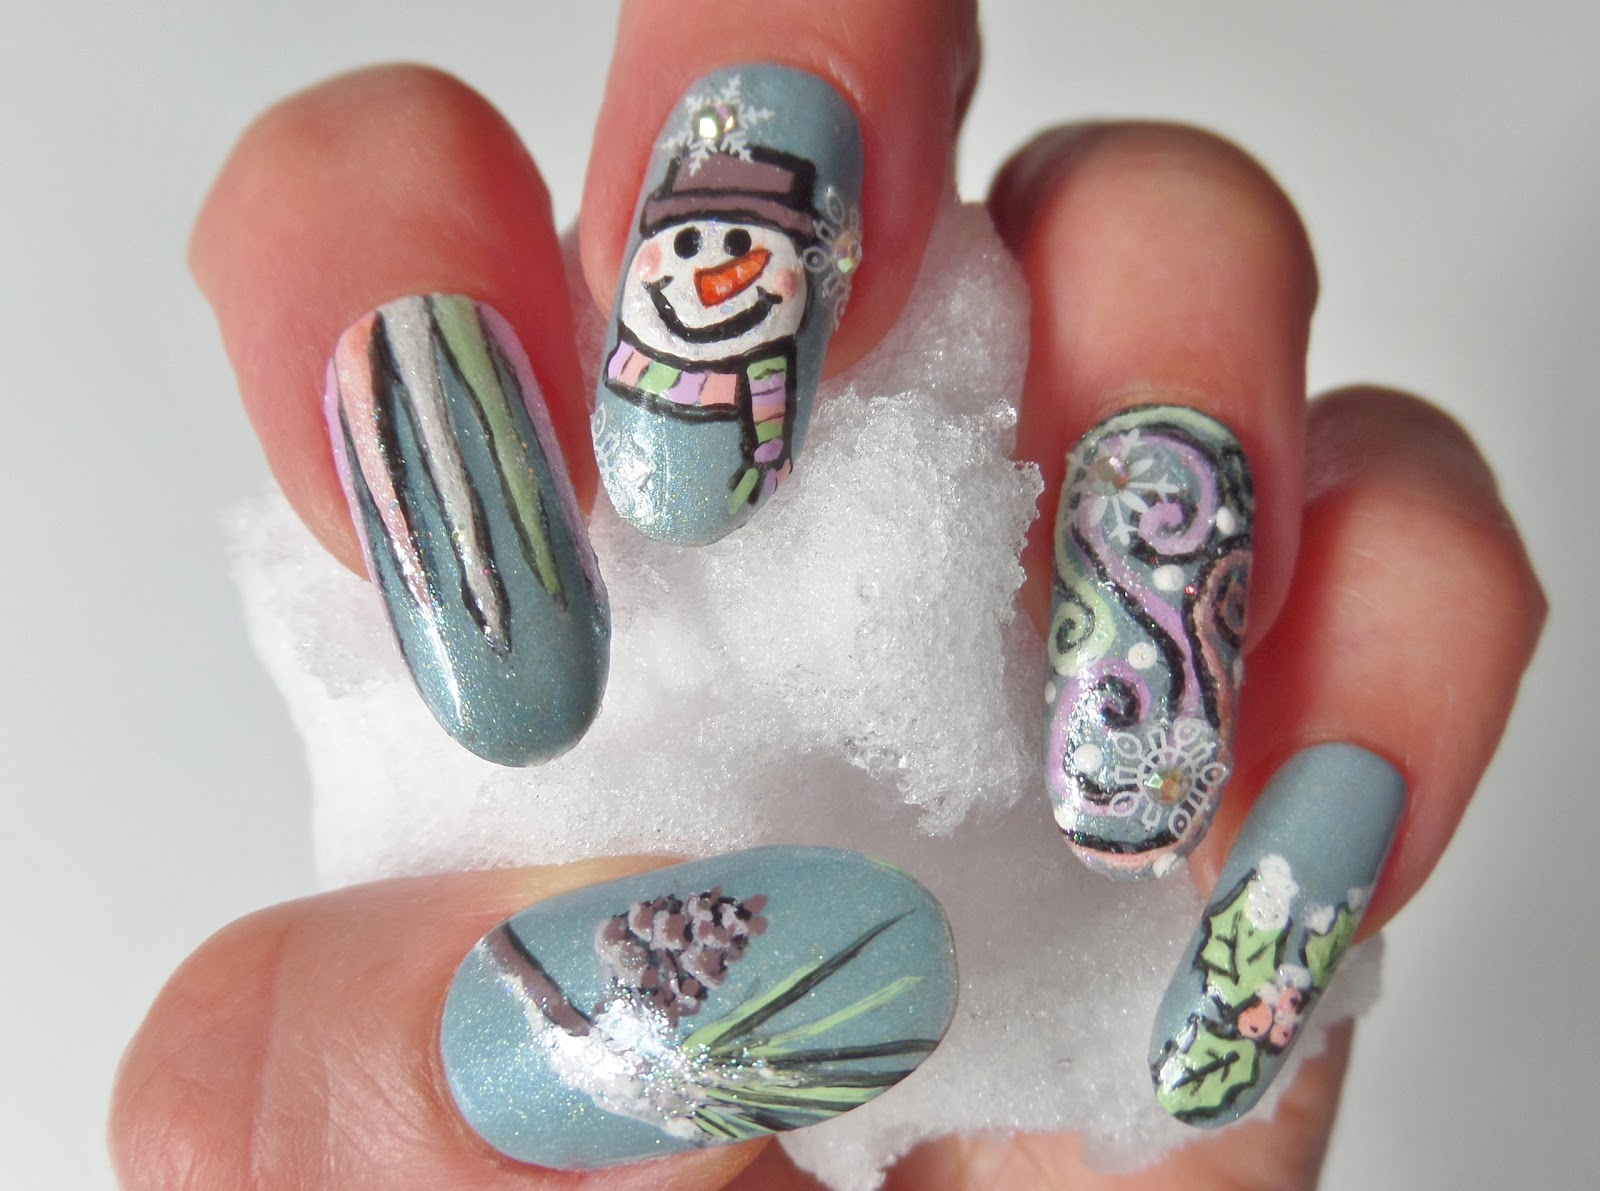 The Juicy Beauty Word Snowman Nail Design